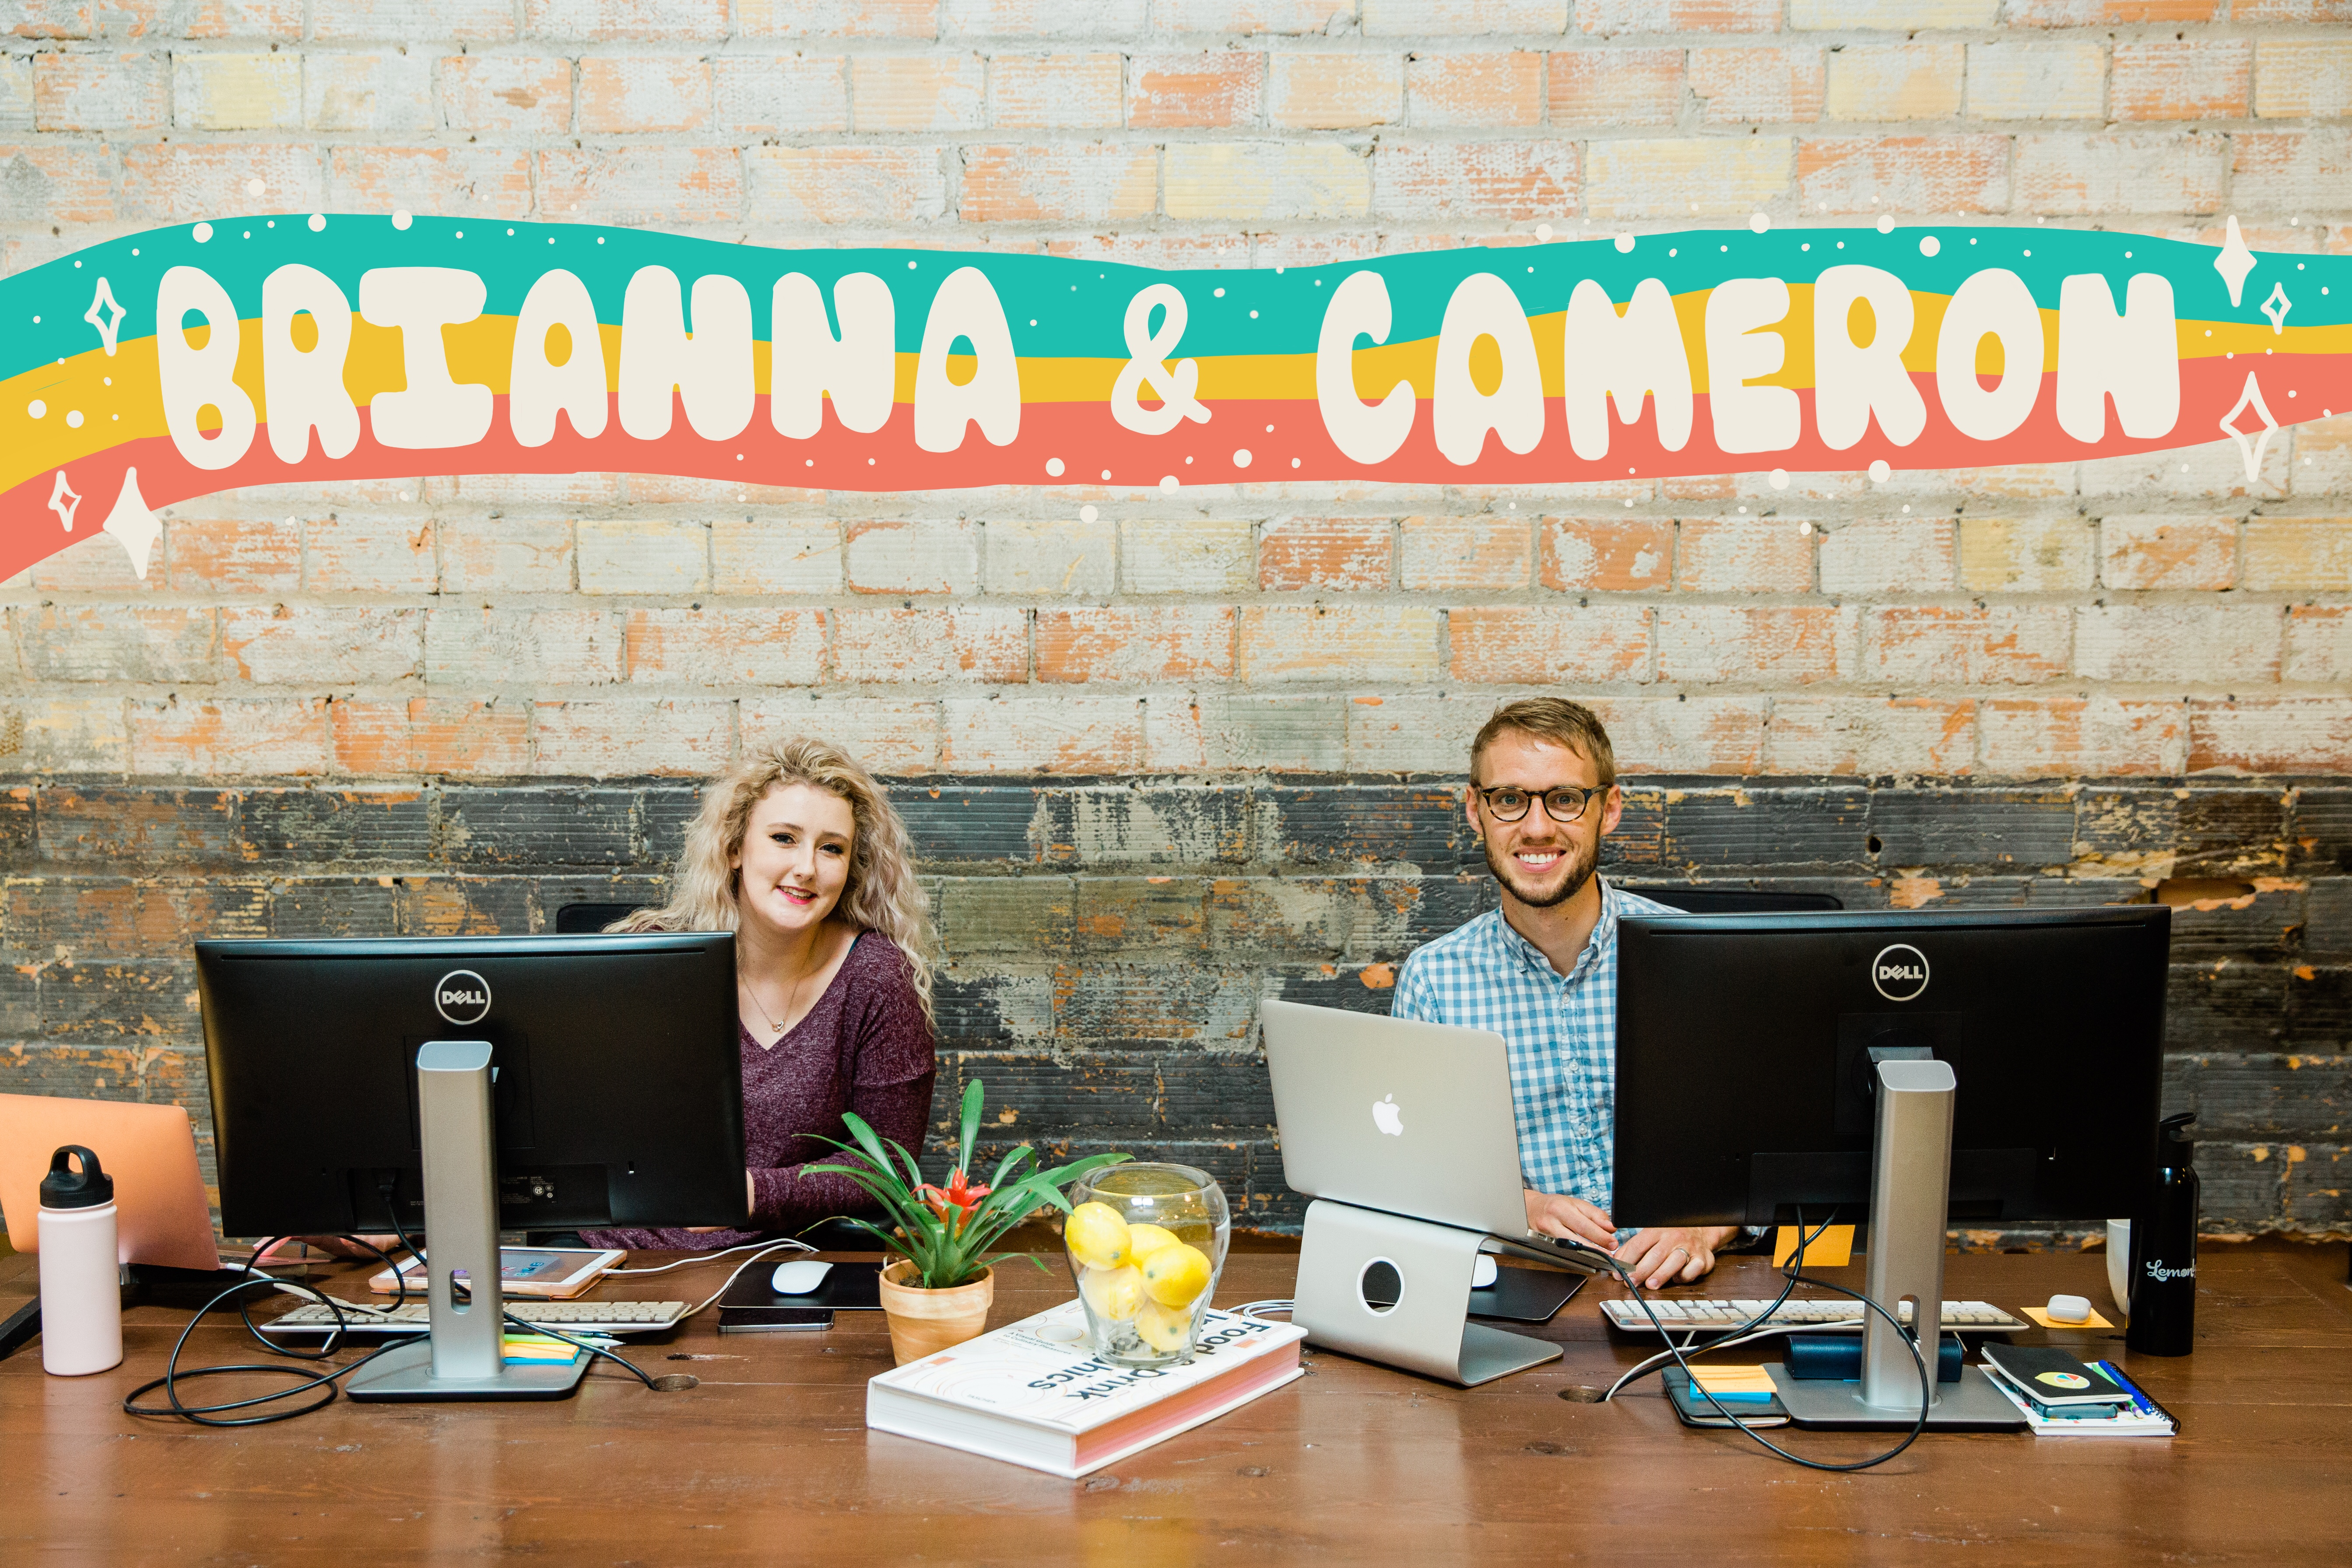 Lemonly summer interns Brianna and Cameron